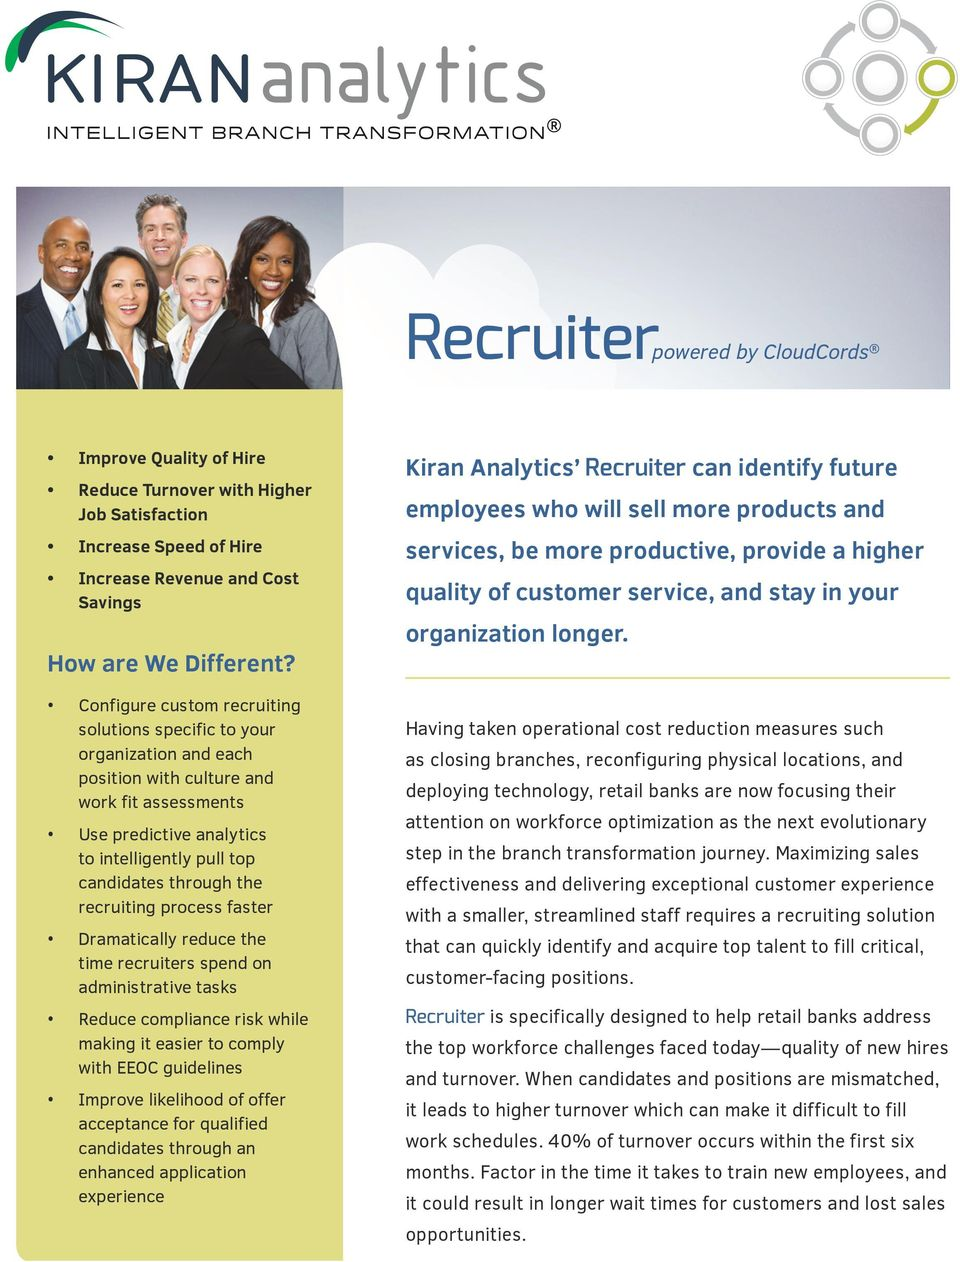 recruiting process faster Dramatically reduce the time recruiters spend on administrative tasks Reduce compliance risk while making it easier to comply with EEOC guidelines Improve likelihood of